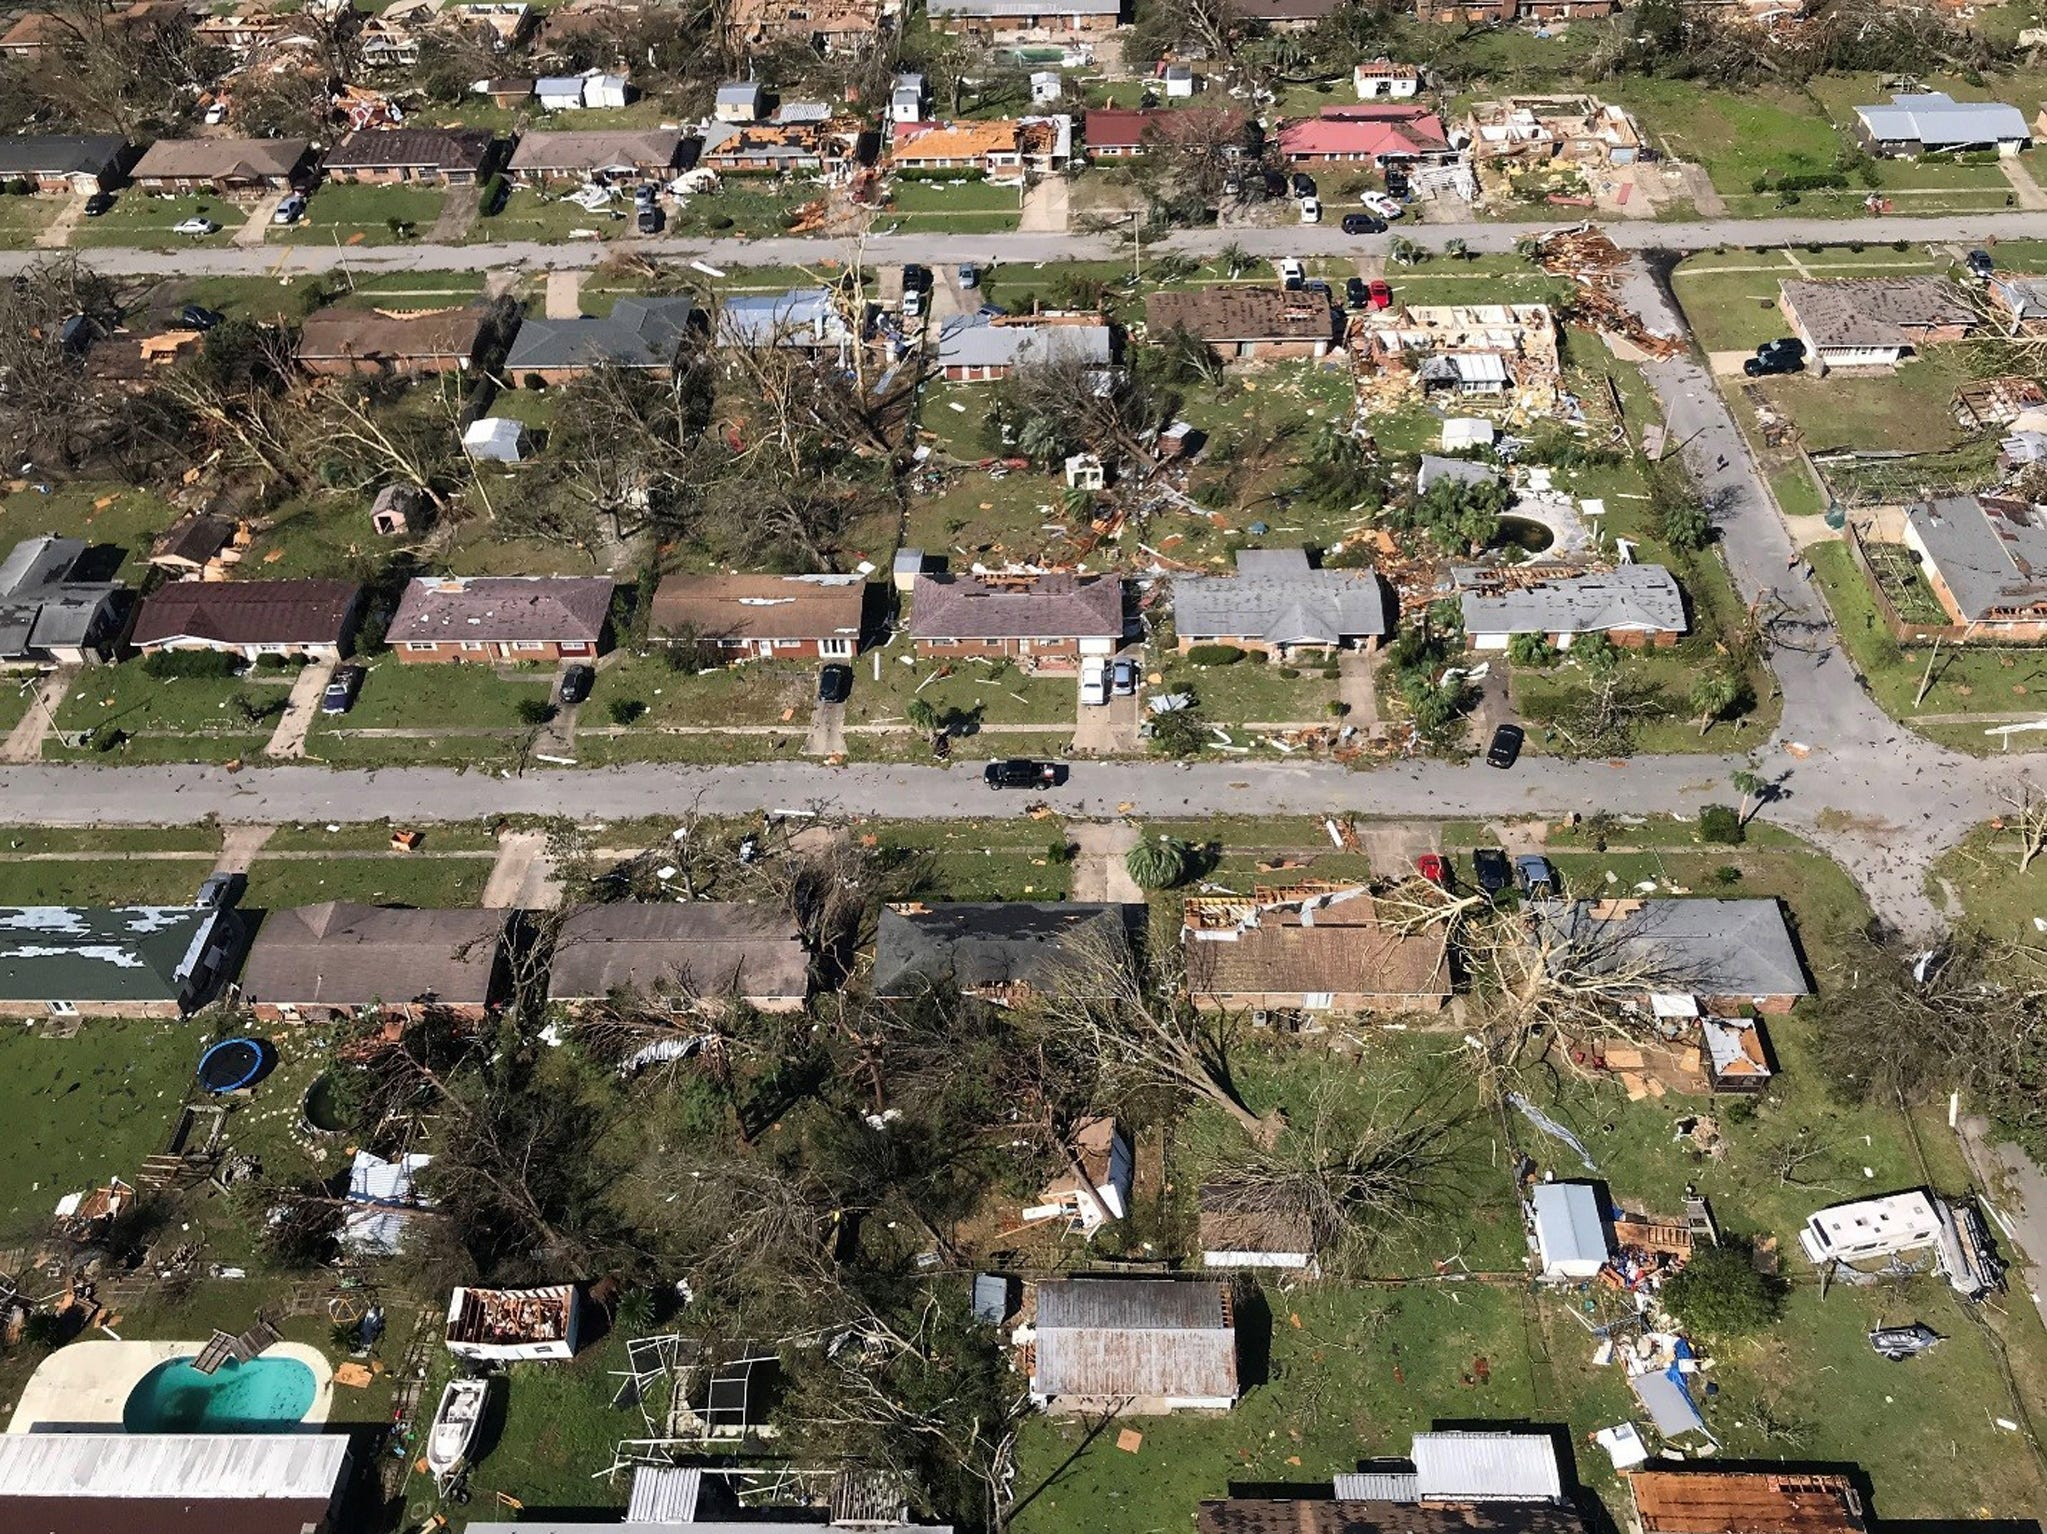 A handout photo made available by the Florida National Guard on Oct. 13, 2018 shows portions of the Florida panhandle devastated following the strike of Hurricane Michael, in Callaway, Fl. on Oct. 11, 2018. This photo was taken as part of the air surveillance that was done to assess the damage caused by the hurricane. Category 4 storm Hurricane Michael devastated northwestern Florida with winds of up to 155 miles per hour and flooding. Florida Governor Rick Scott activated over 2,000 troops of the Florida National Guard to respond to the disaster.